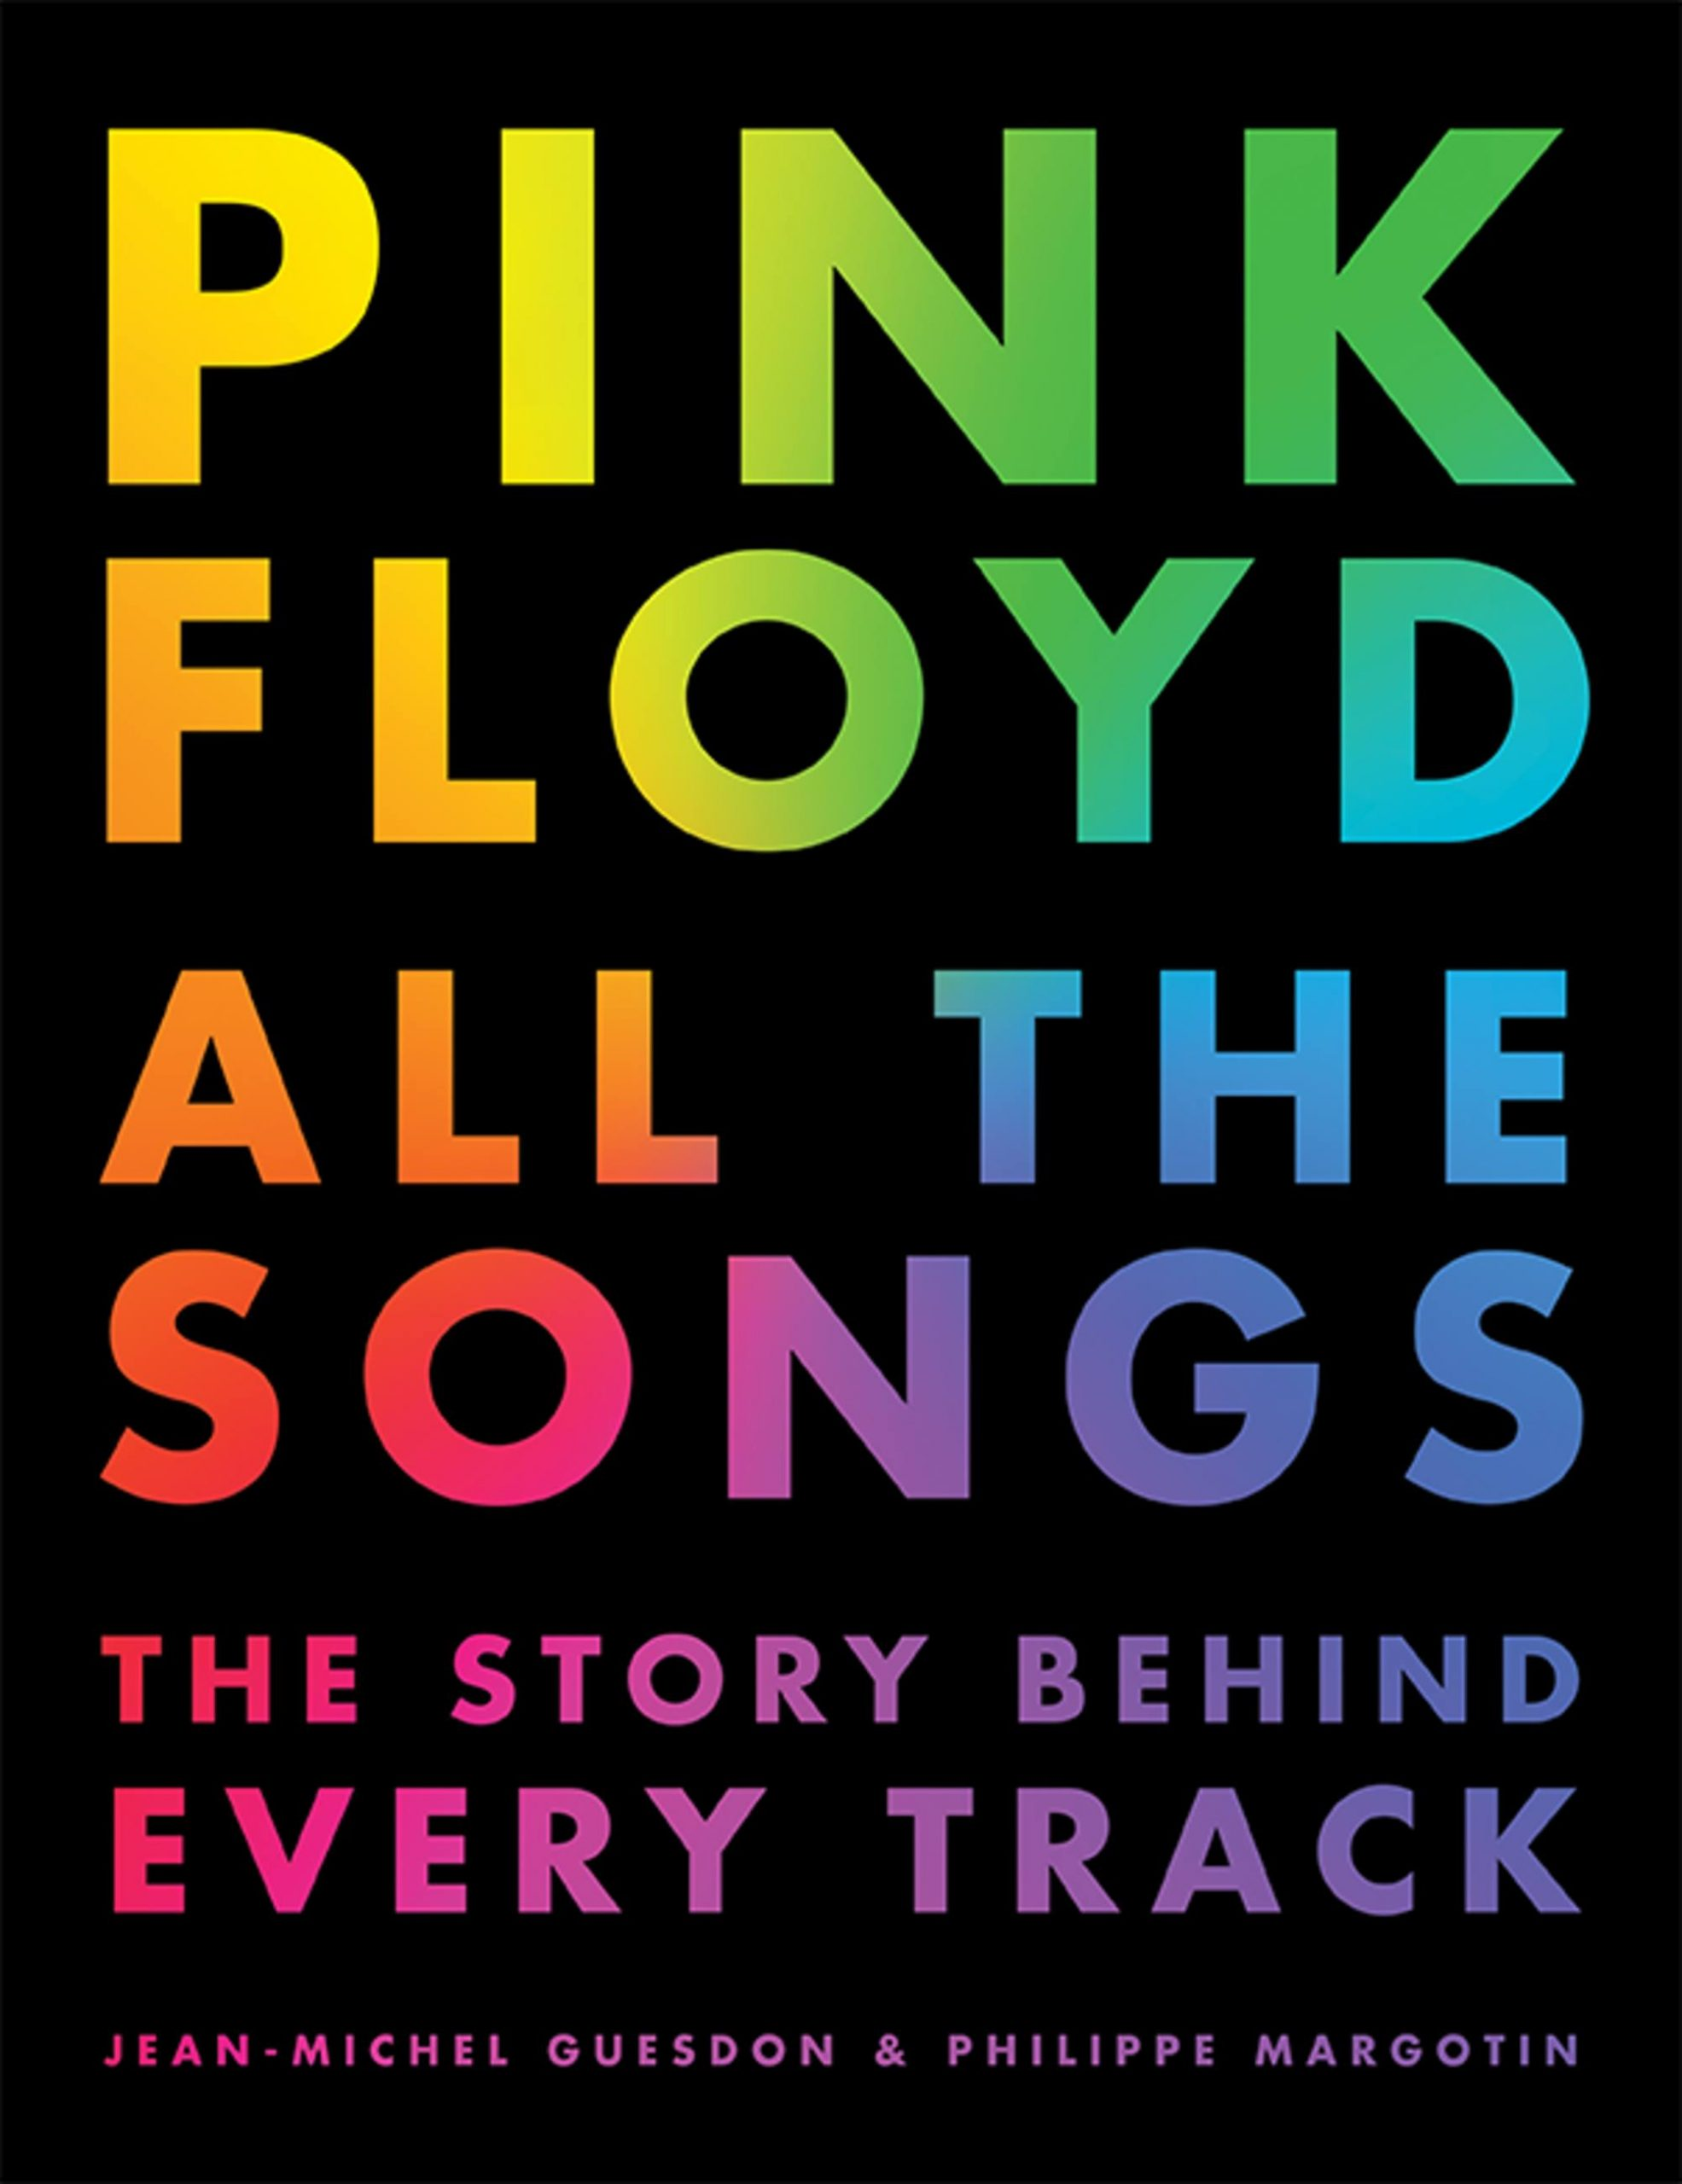 Pink Floyd All the songs – The story behind every track